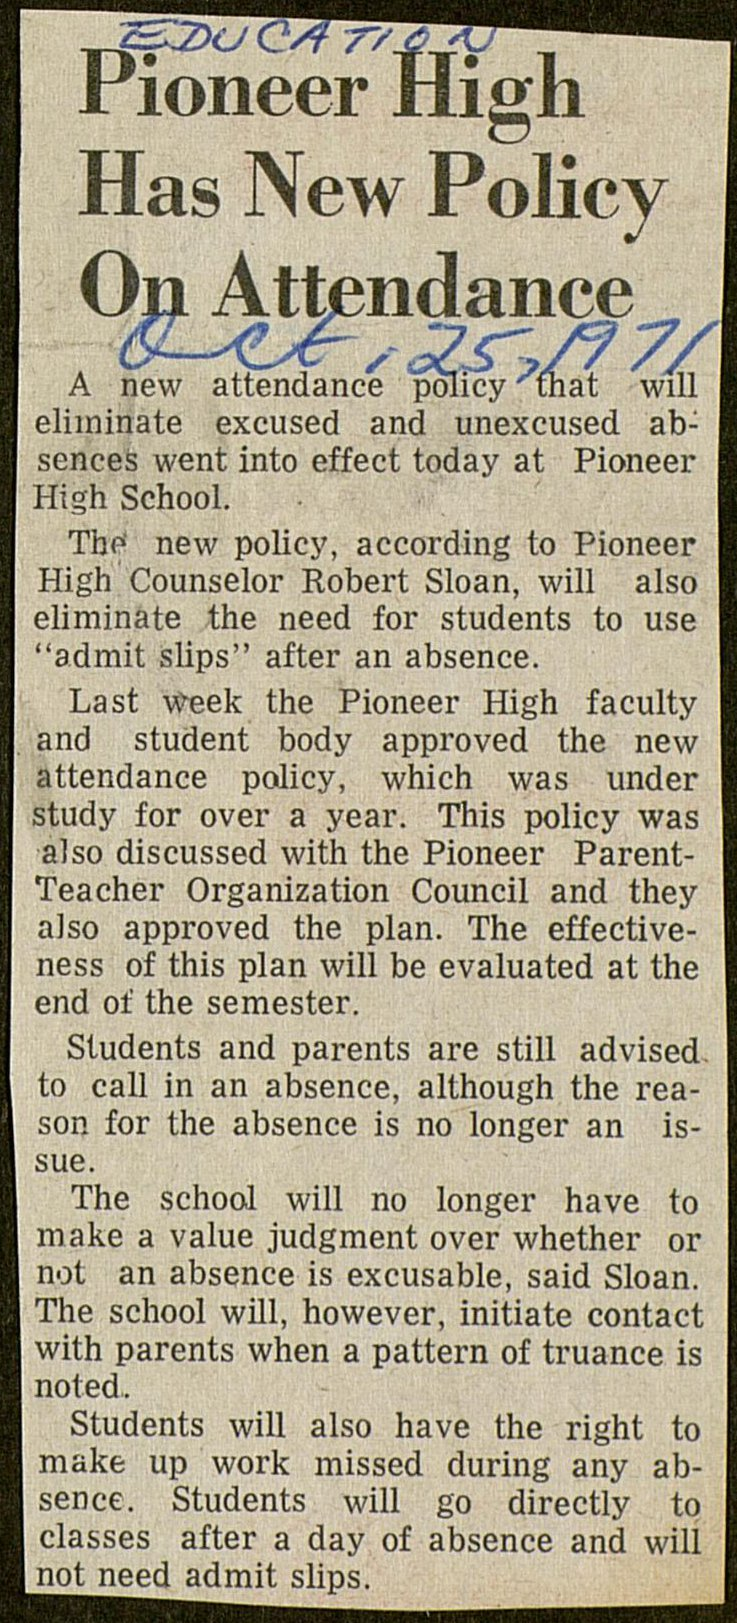 Pioneer High Has New Policy On Attendance image